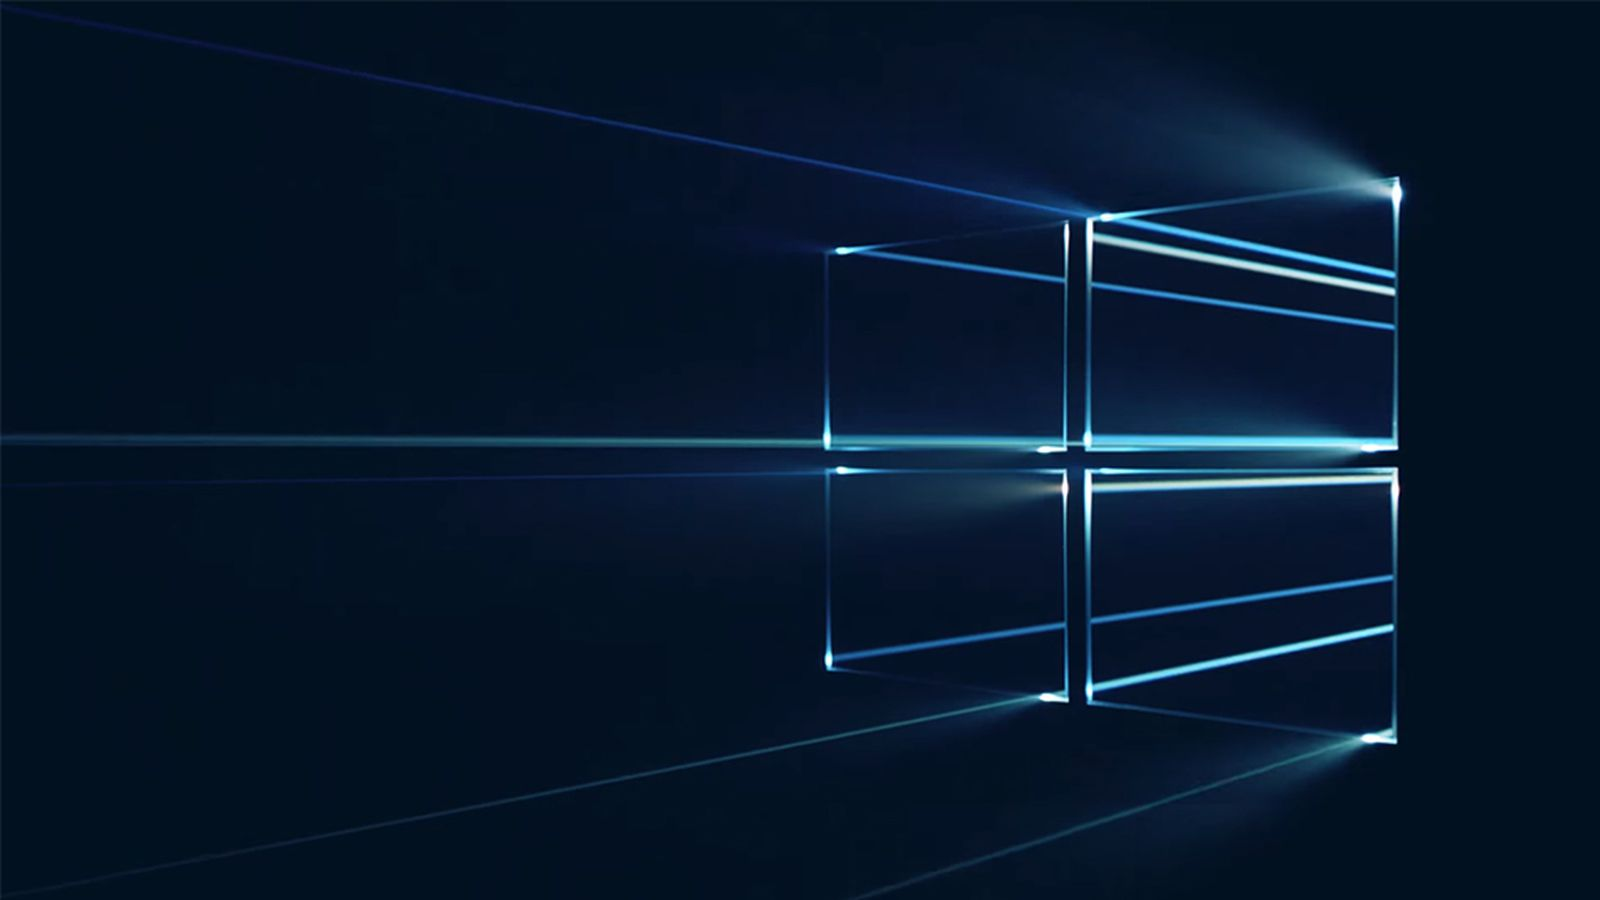 This Music Video From Microsoft Is Pure Windows 10 Hype